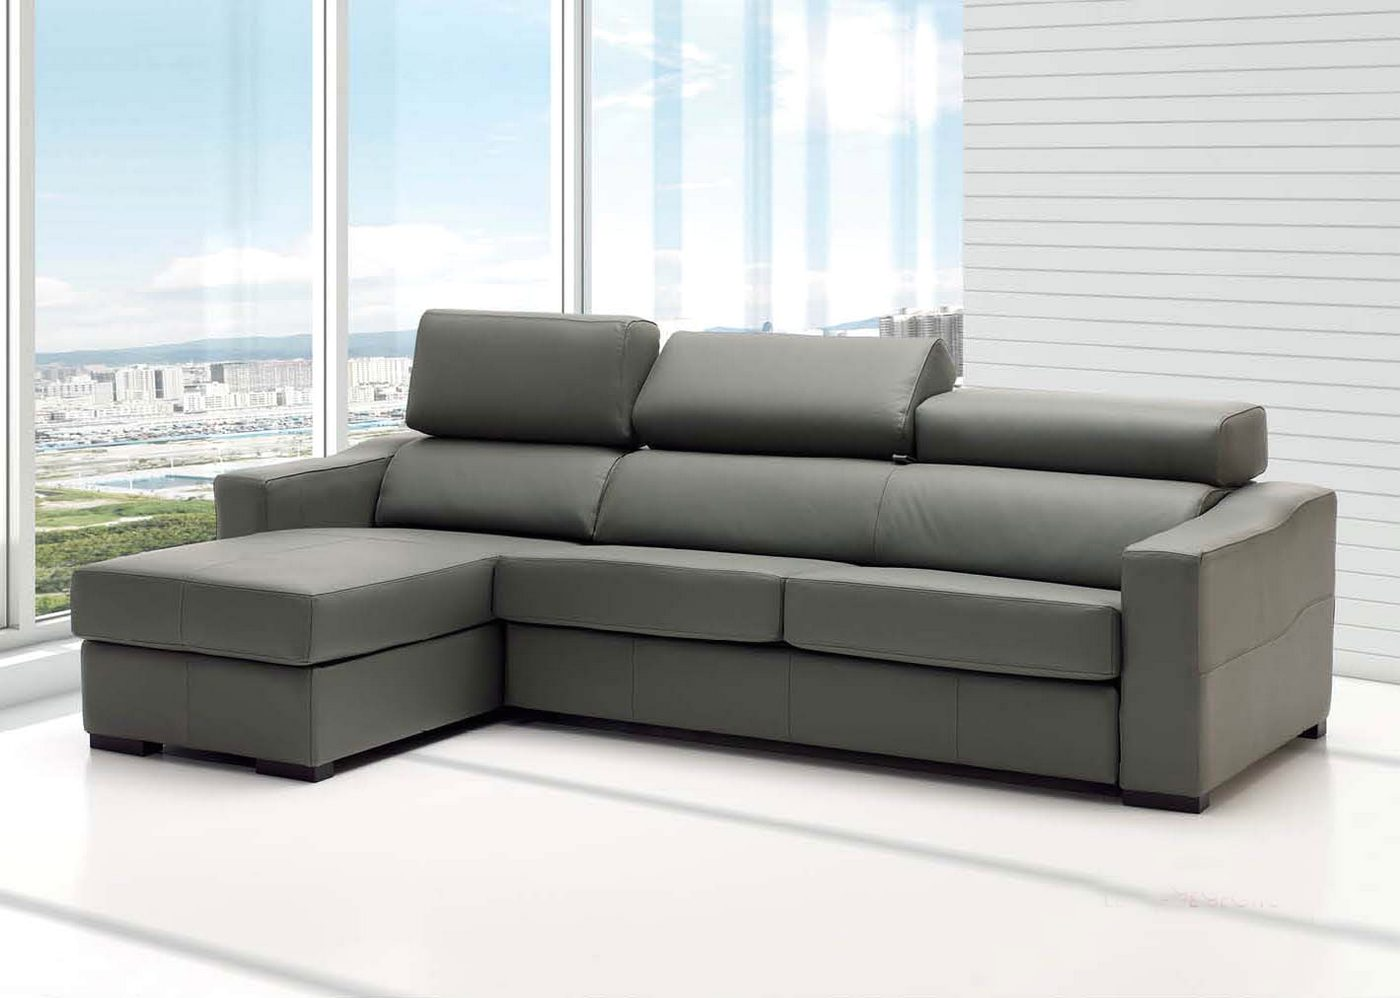 small sectional storage chaise sofa pull out bed sleeper cama kivik funda lucas grey leather with and